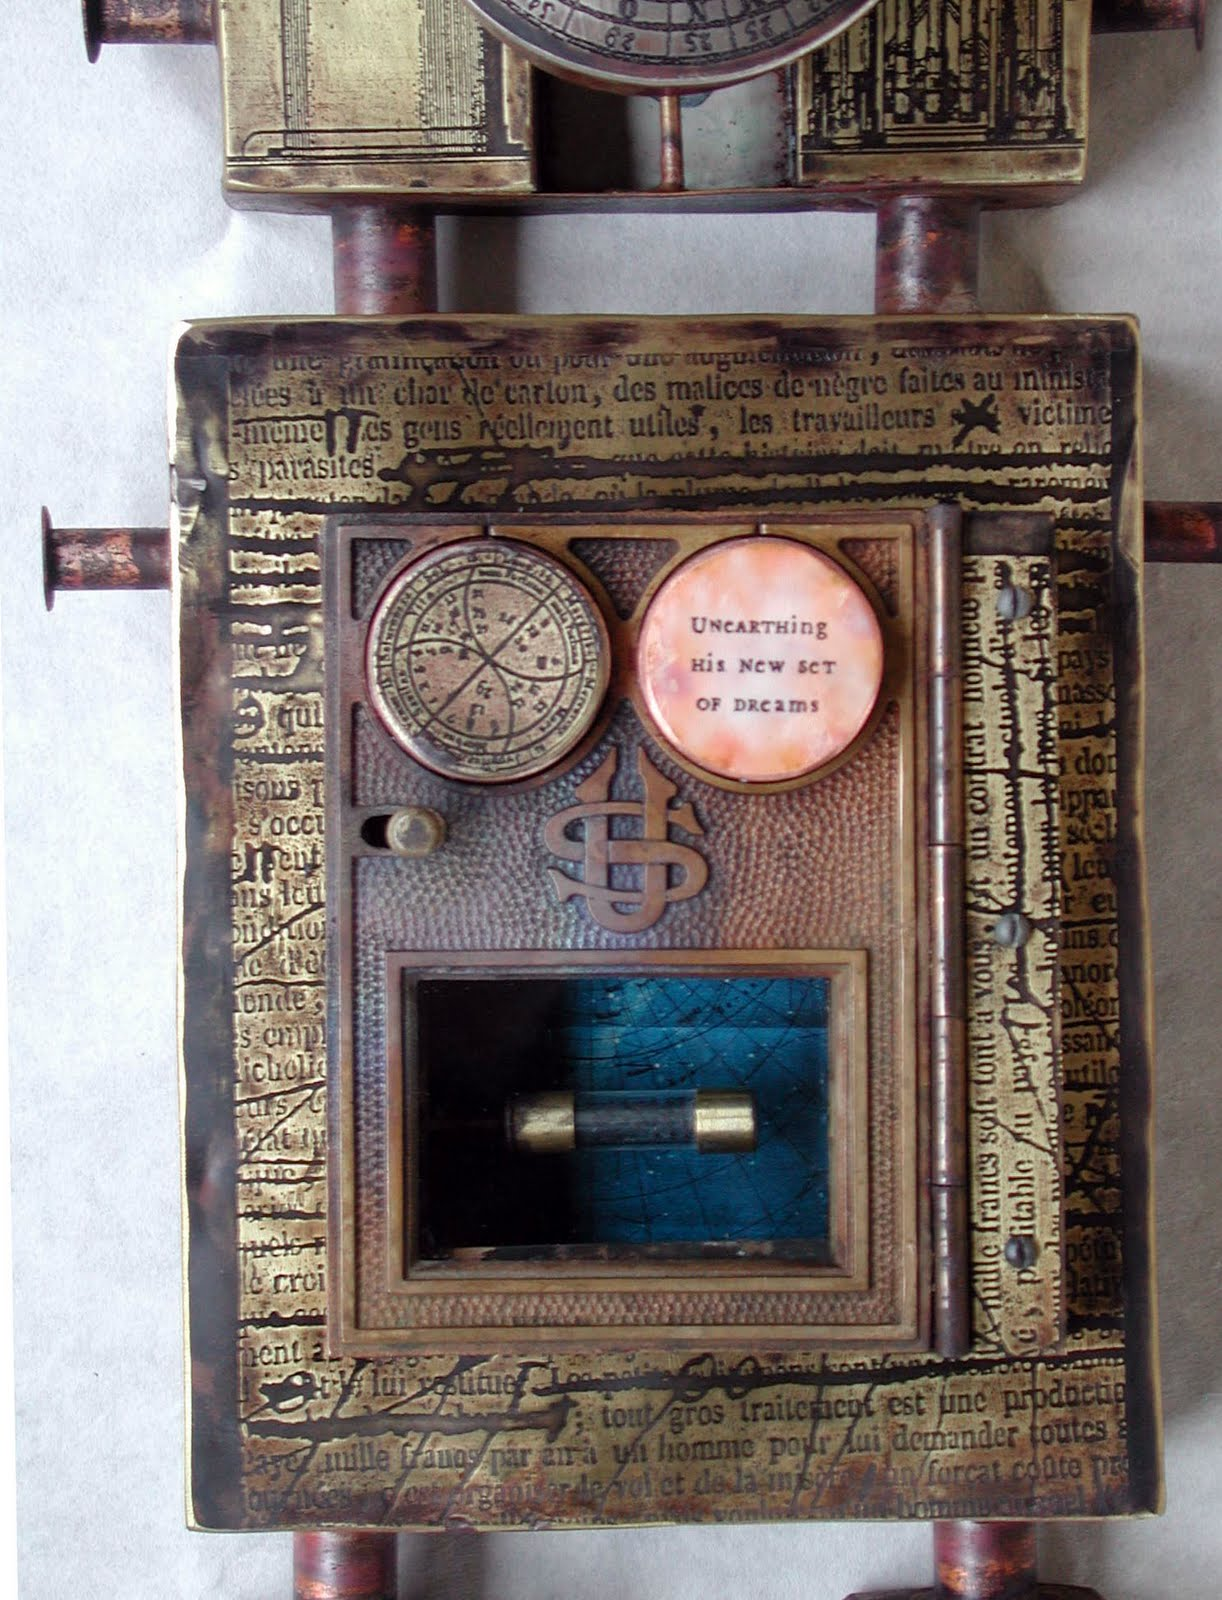 steampunk fuse box 2 artatec automobile de u2022steampunk fuse box 1 [ 1222 x 1600 Pixel ]